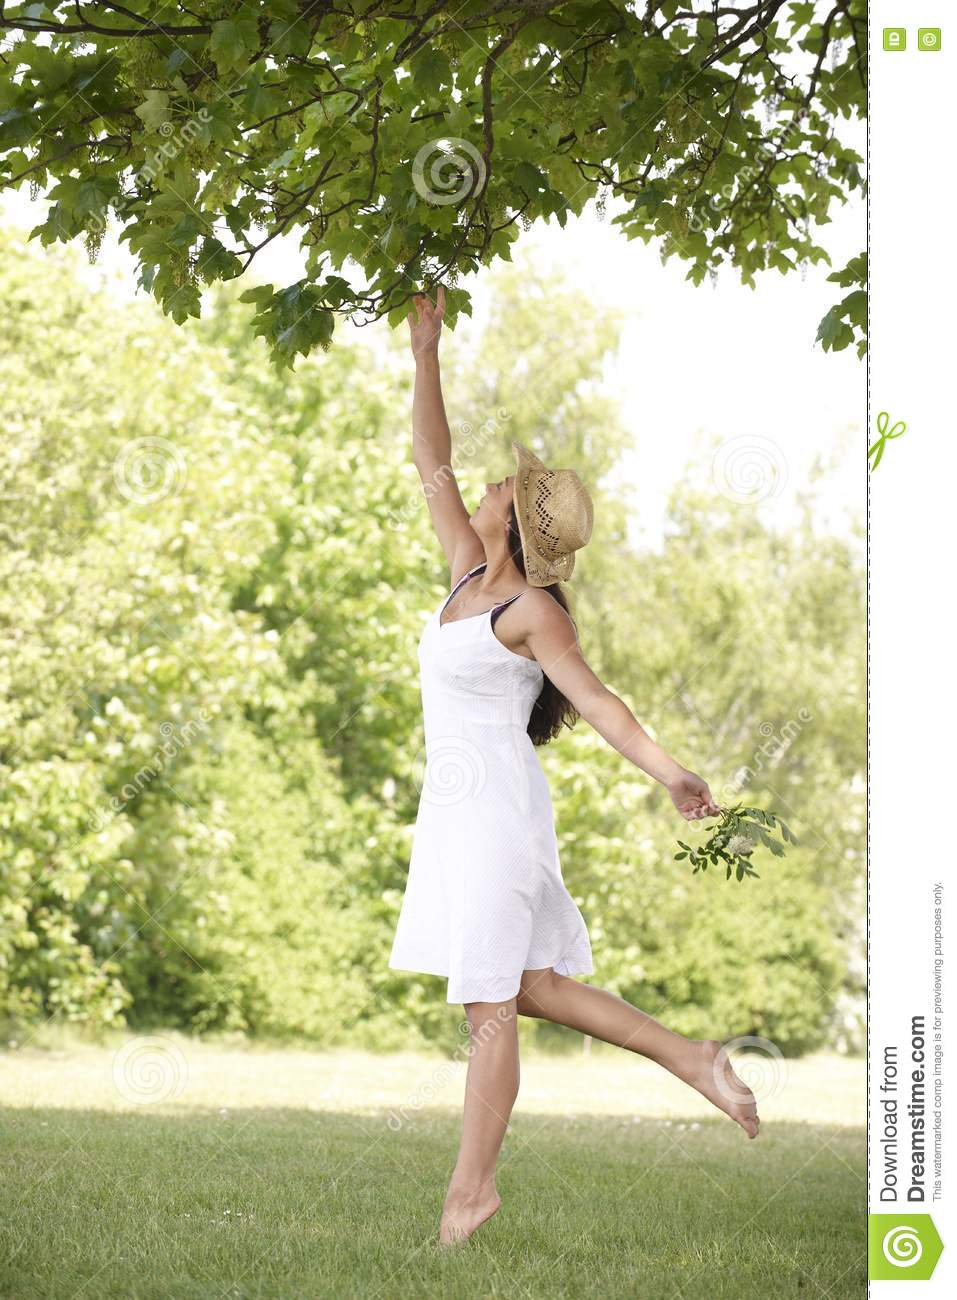 Up To 50 Off Mac Cosmetics At Nordstrom Rack: Woman Reaching Up To Branch Royalty Free Stock Photos